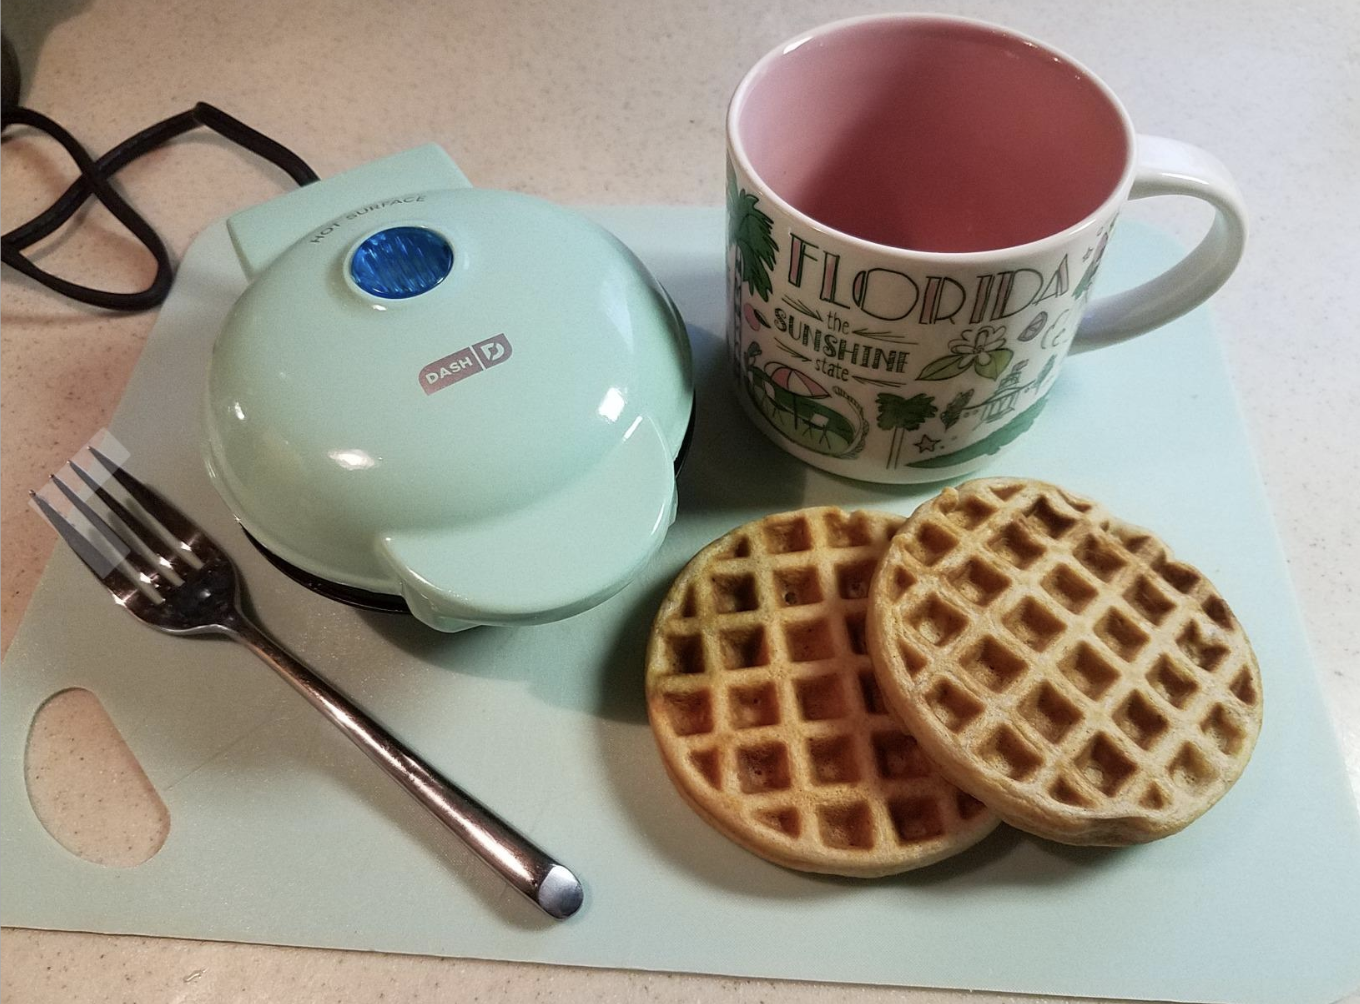 two cooked waffles next to small blue waffle maker